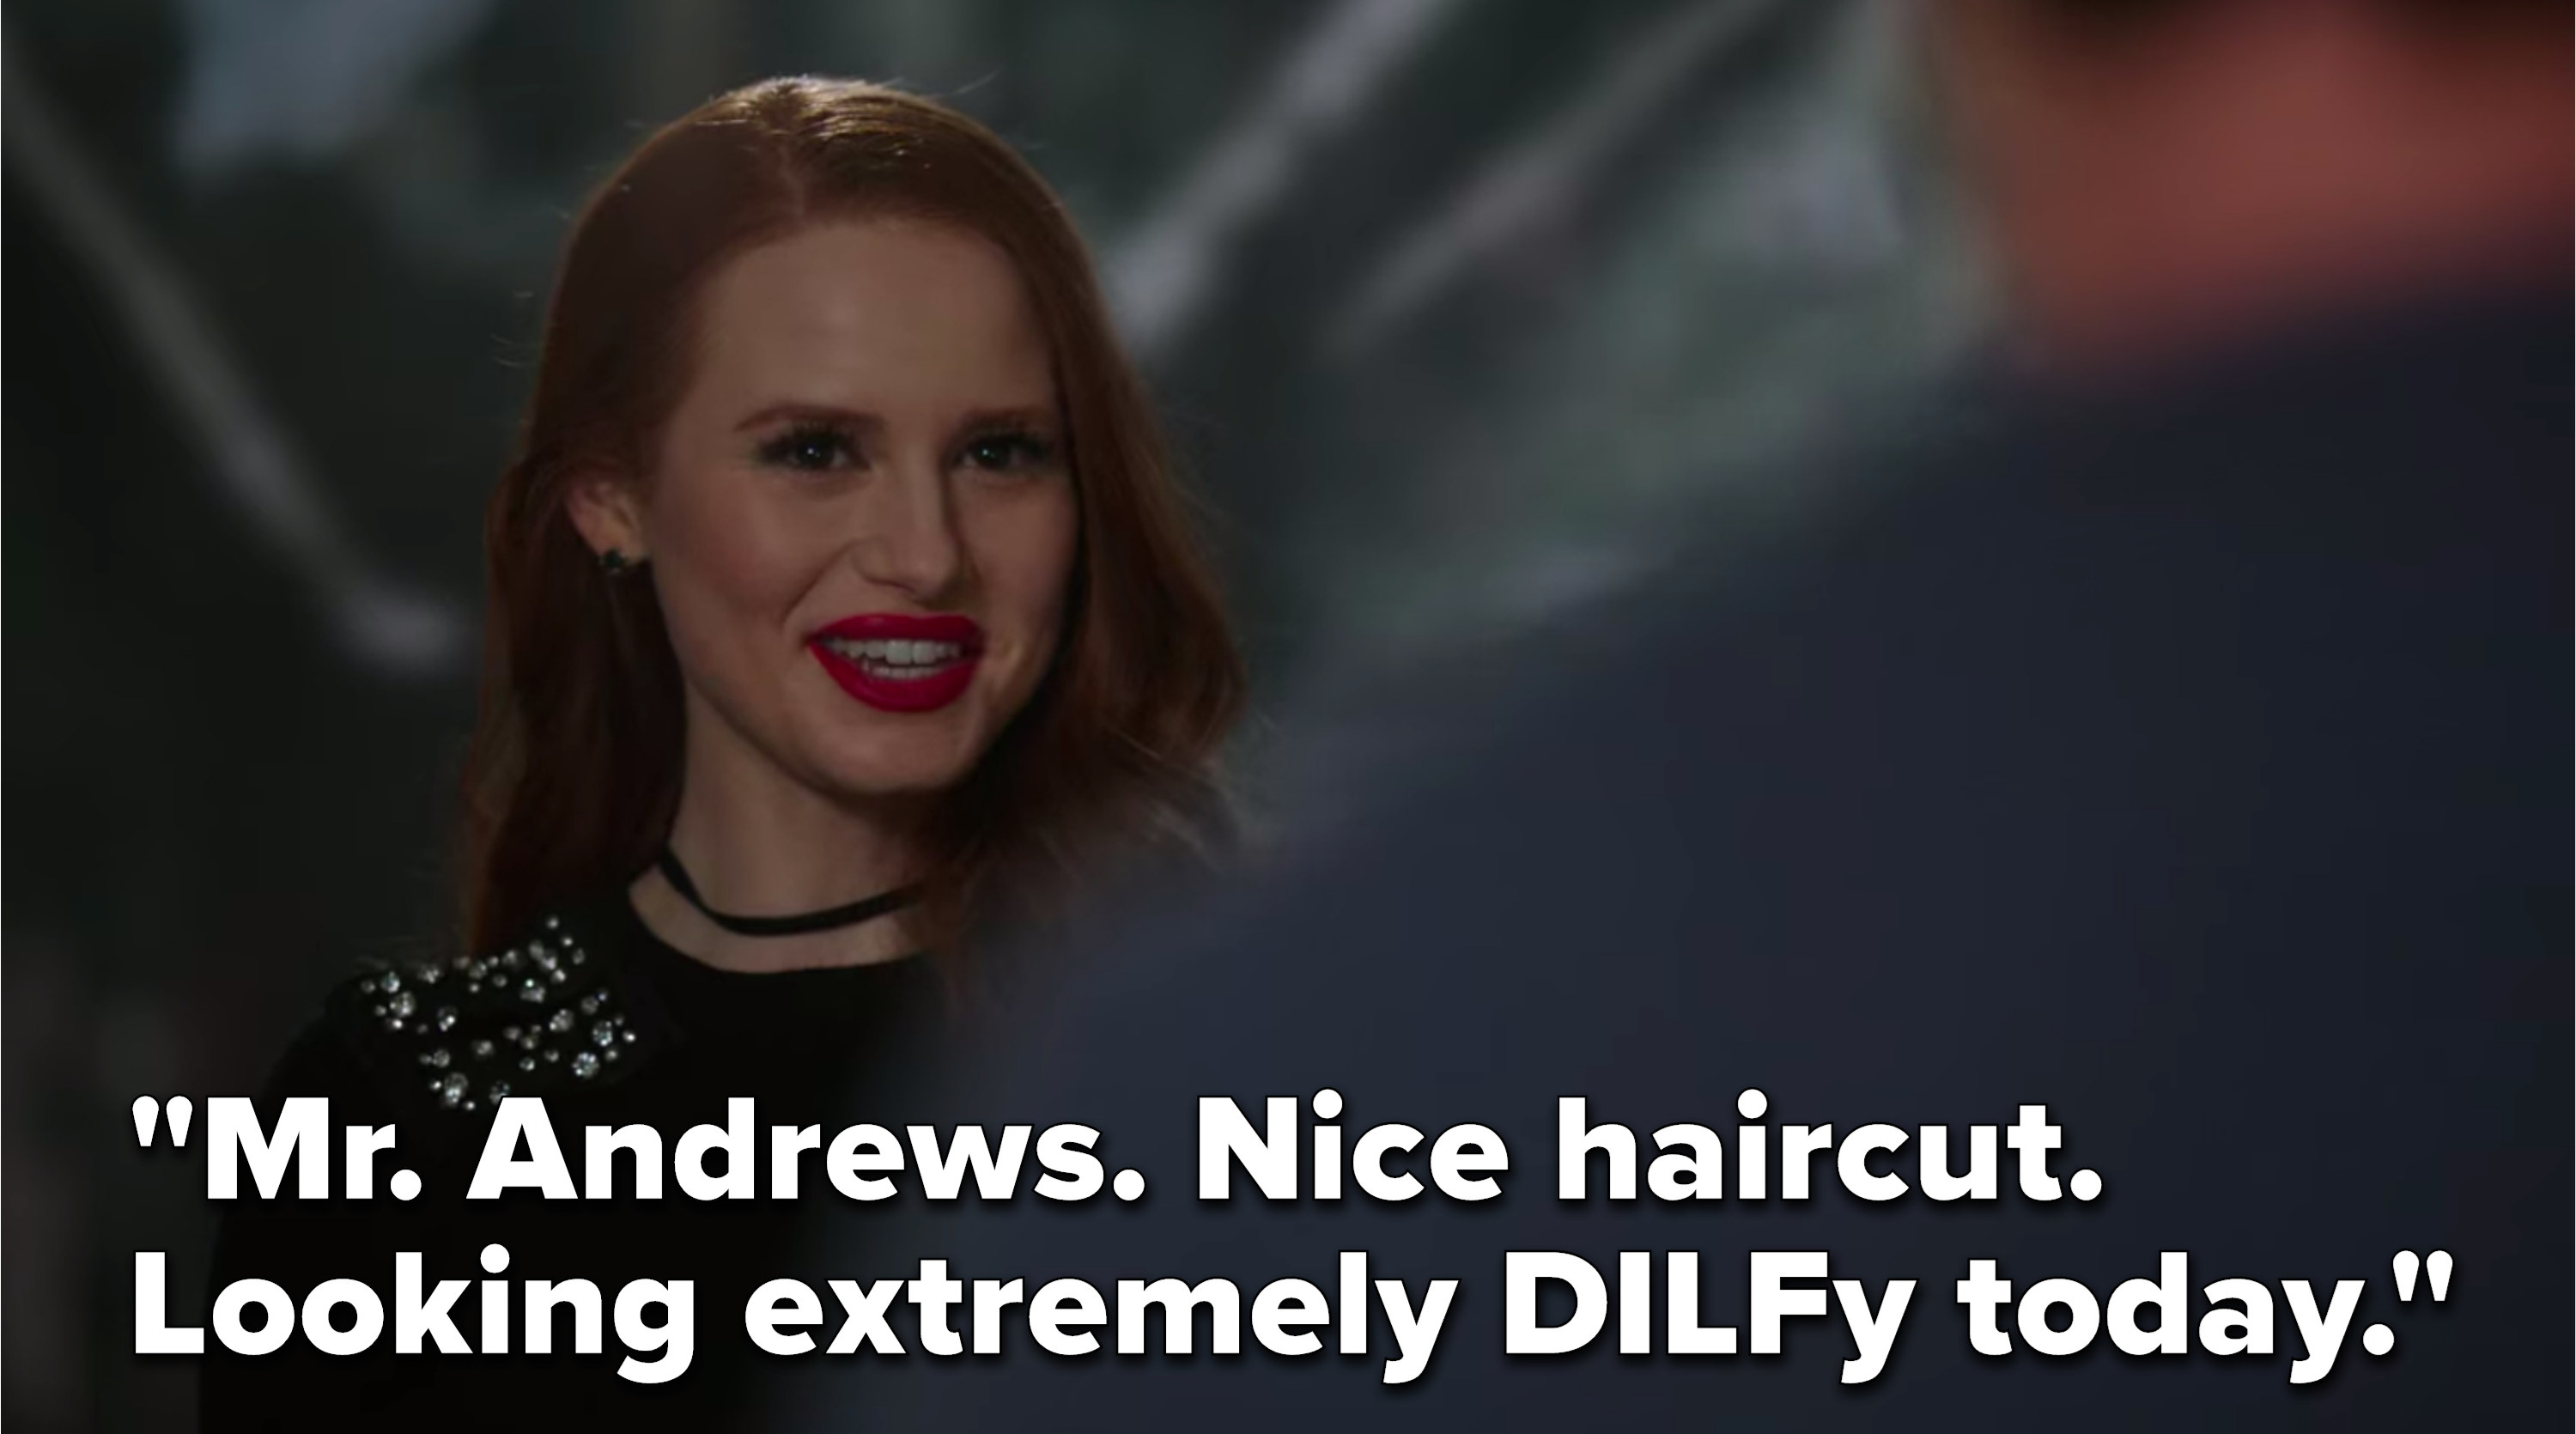 """Cheryl says, """"Mr. Andrews, nice haircut, looking extremely DILFy today"""""""